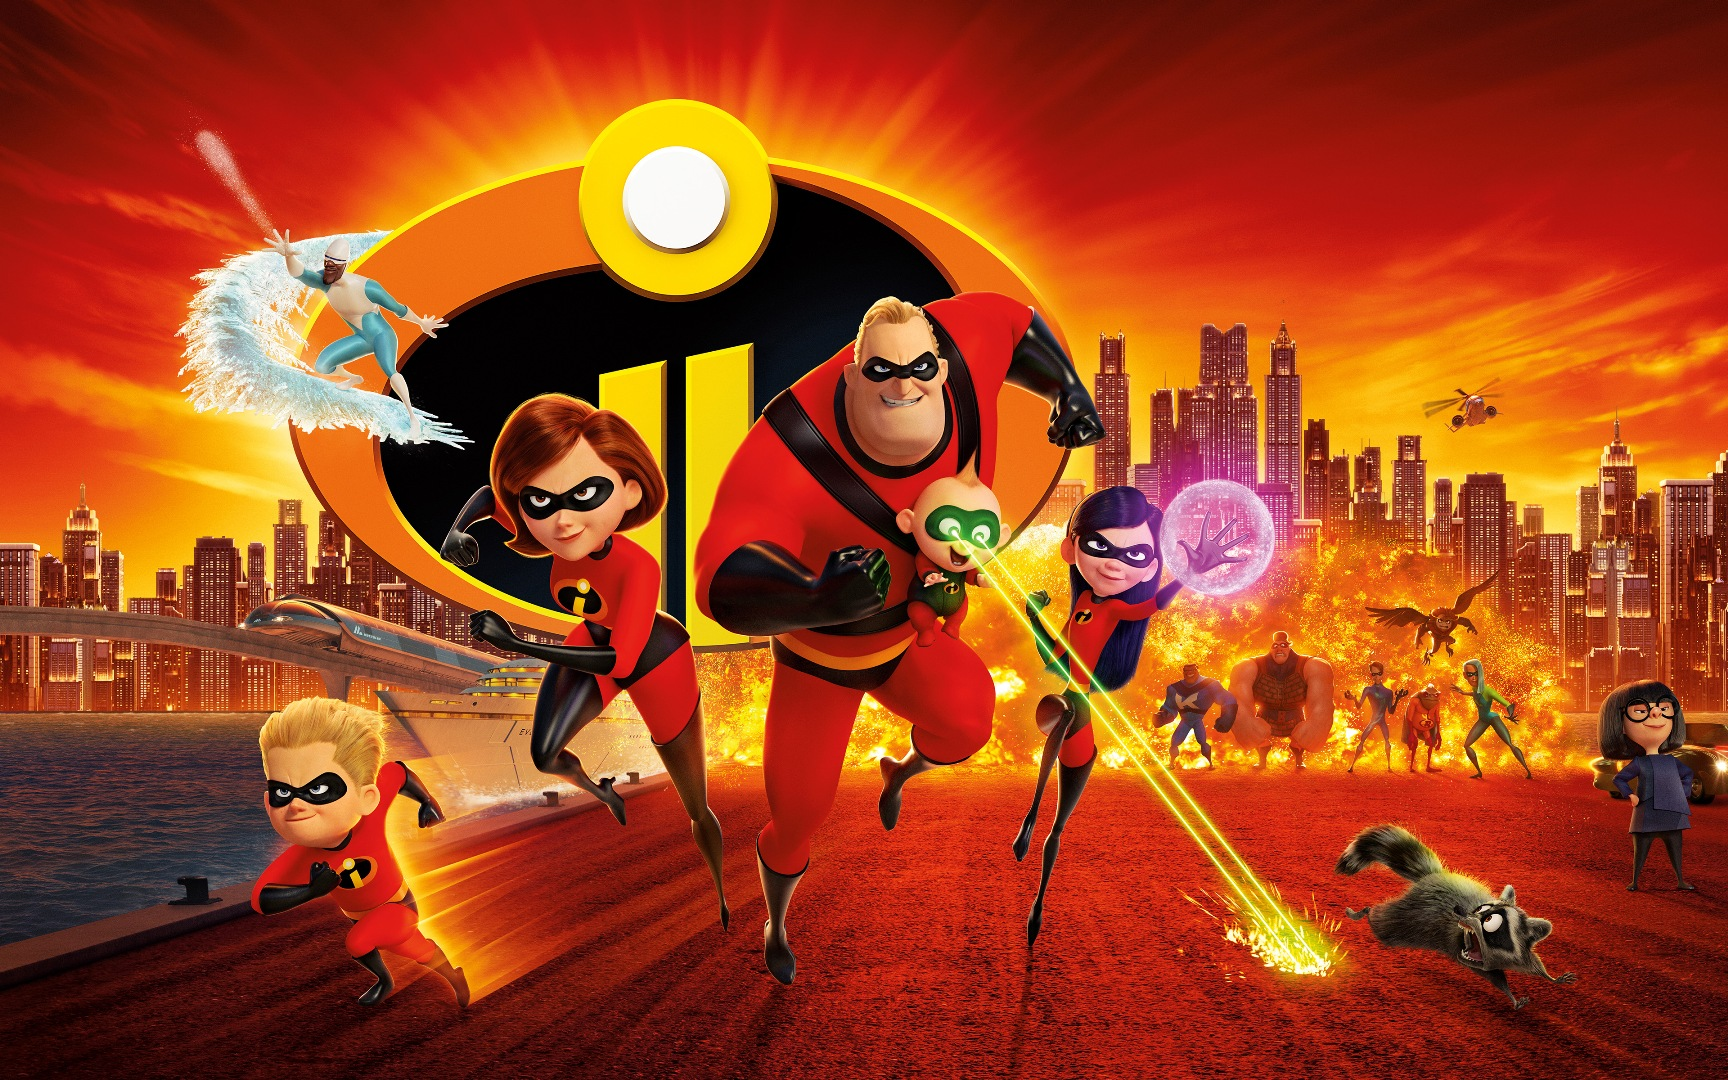 incredibles 2 movie wallpaper